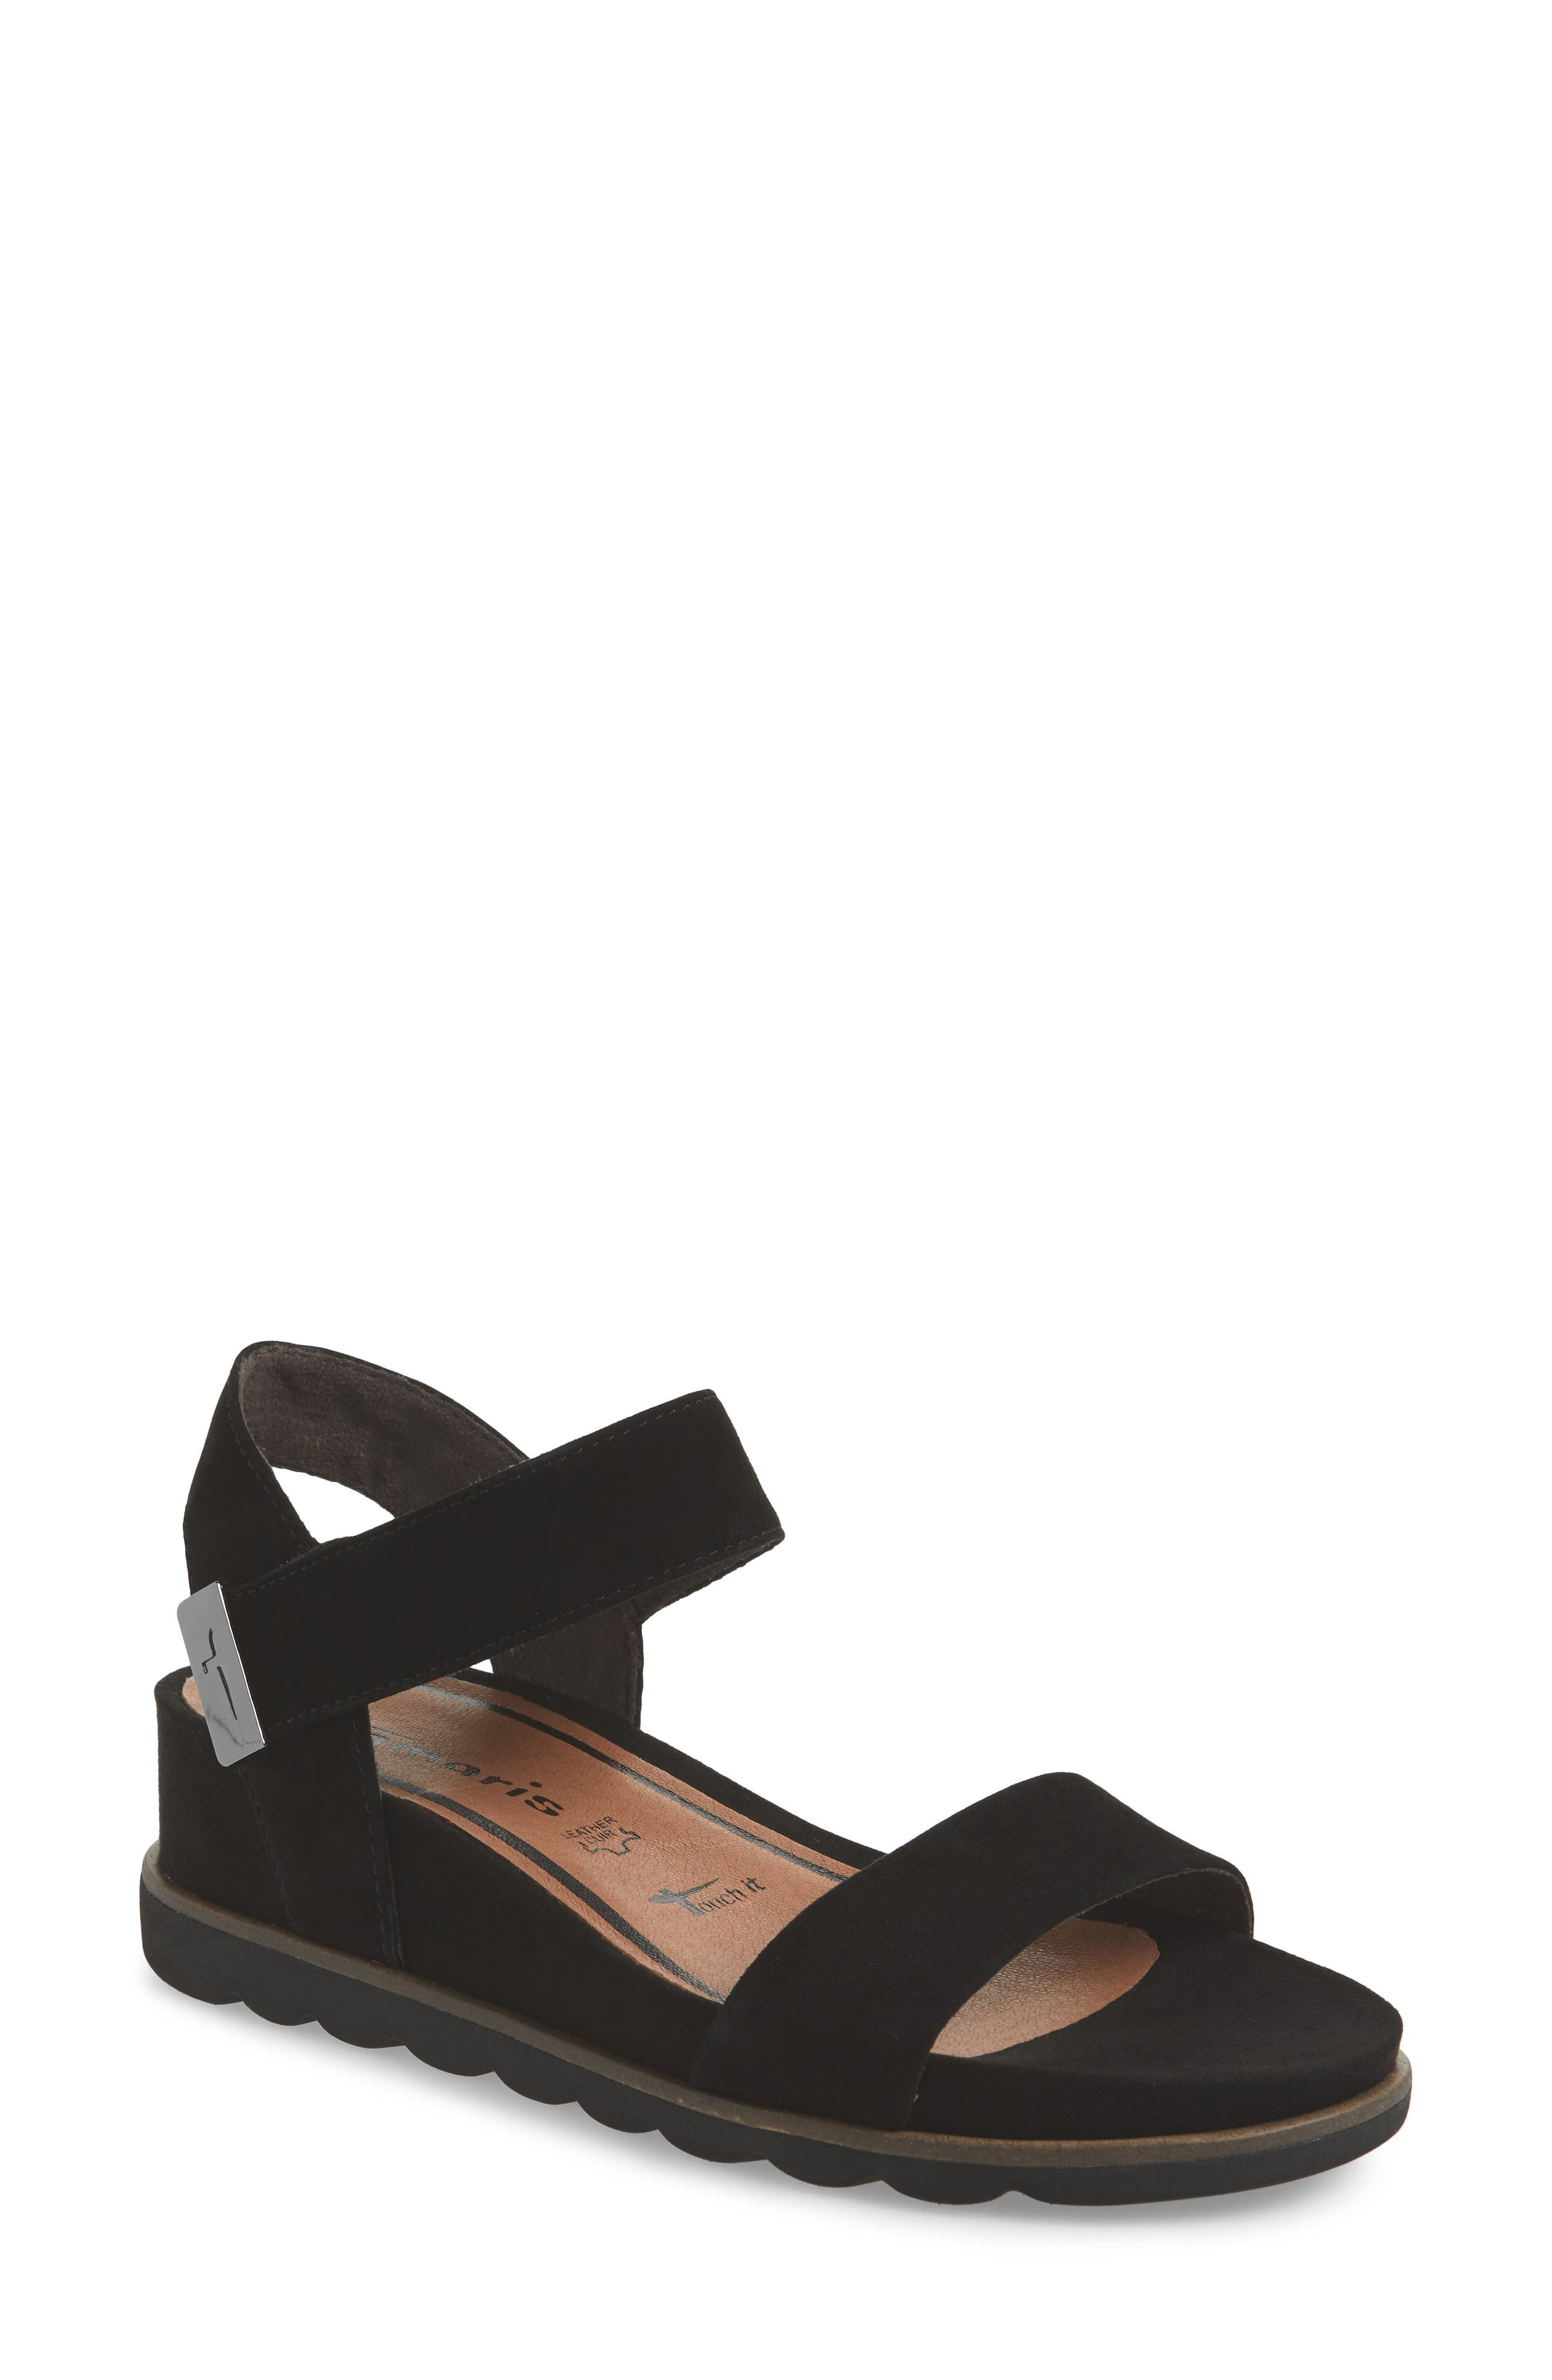 Cory Wedge Sandal,                         Main,                         color,